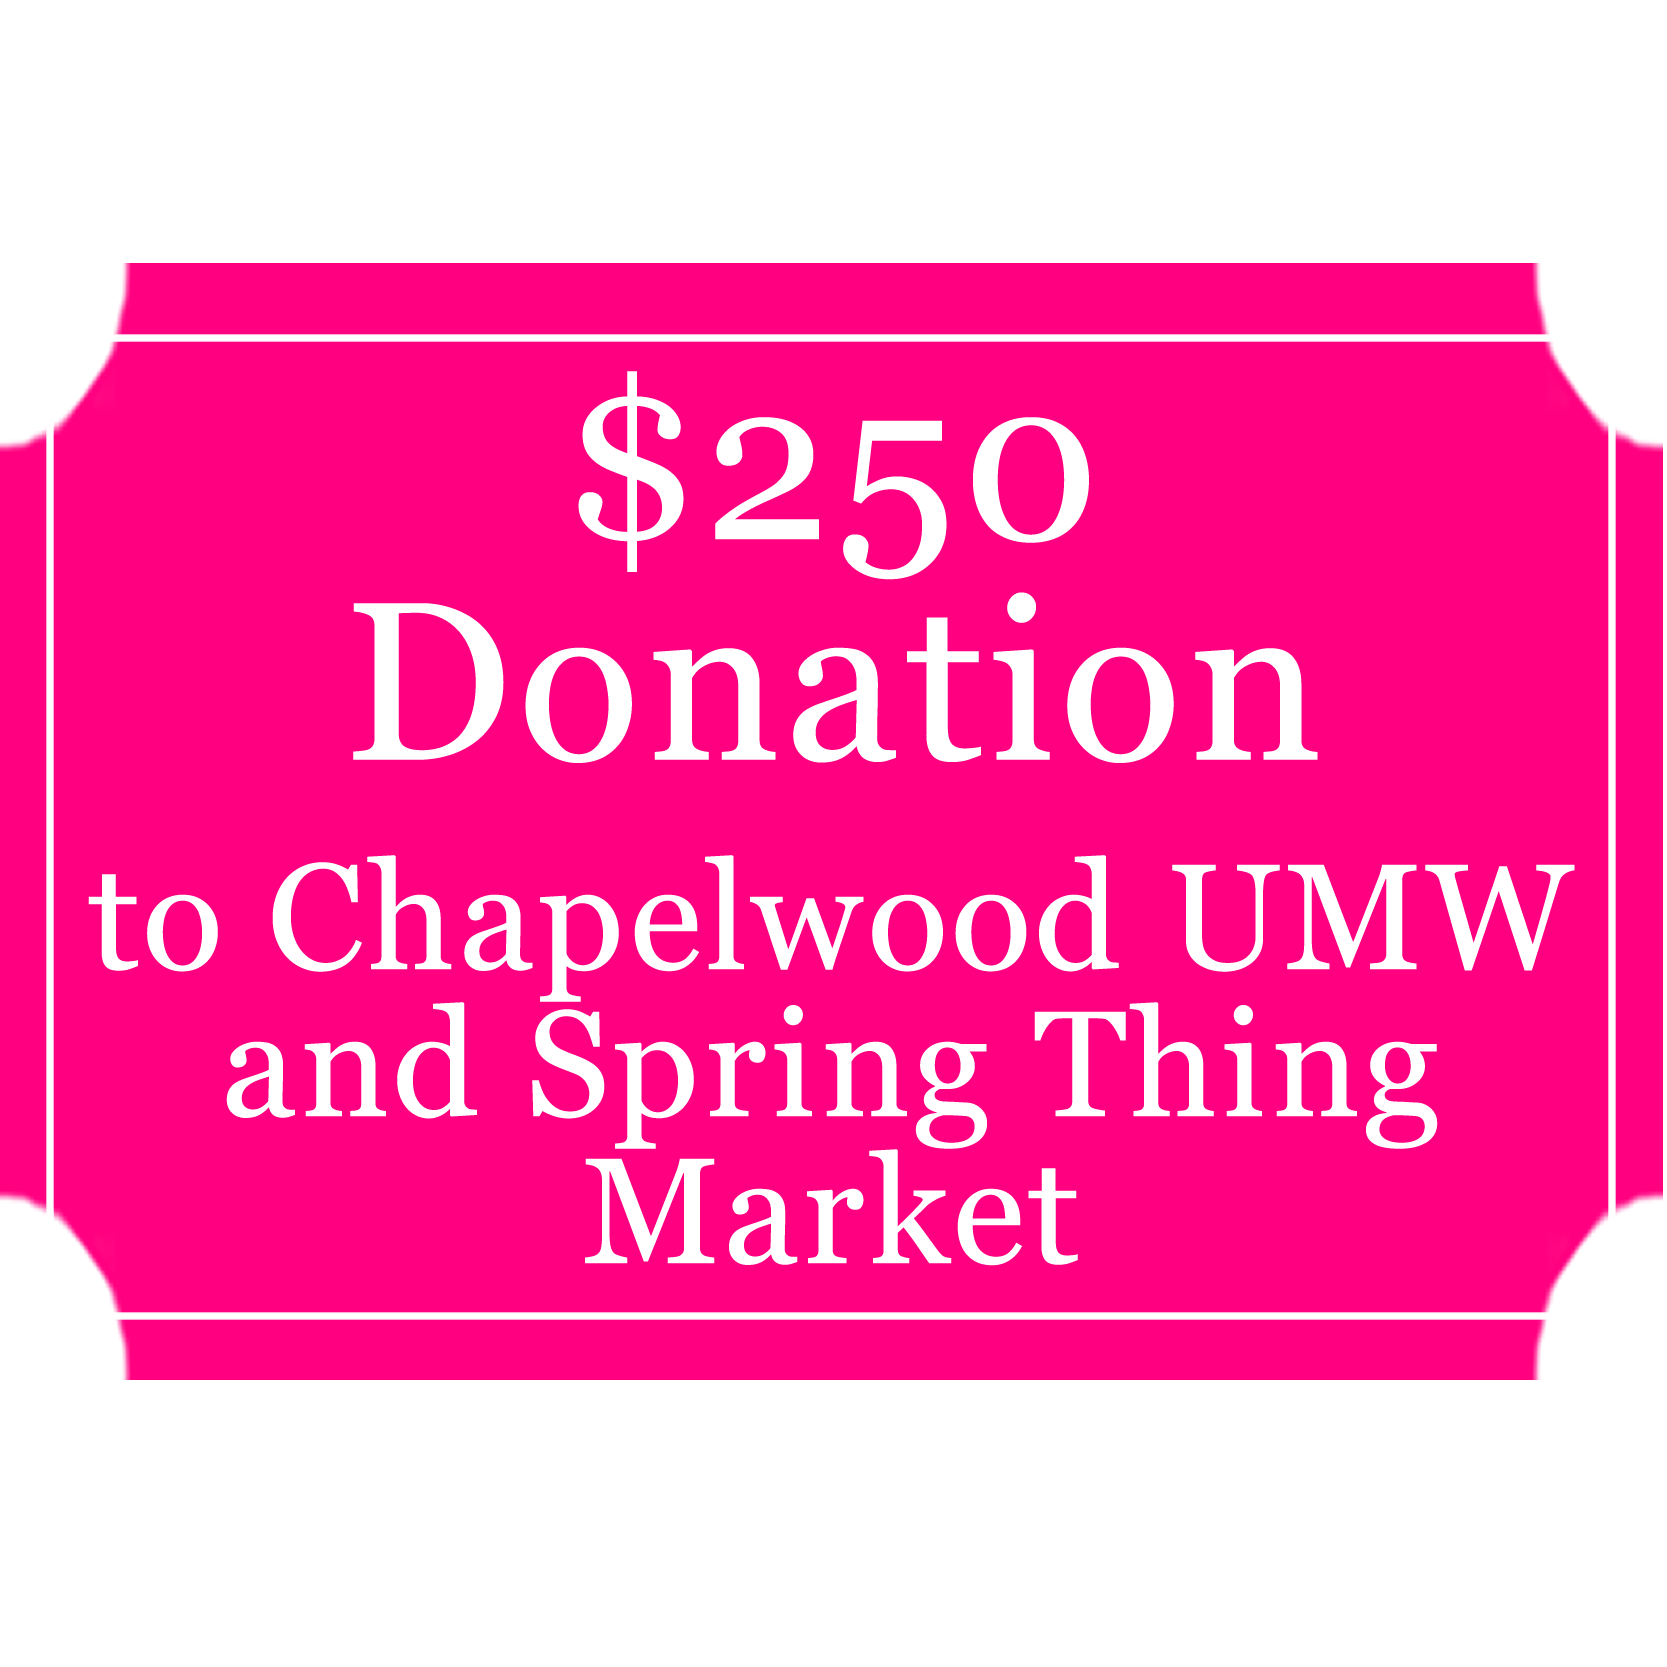 $250 Donation to Chapelwood UMW and Spring Thing Market 00000